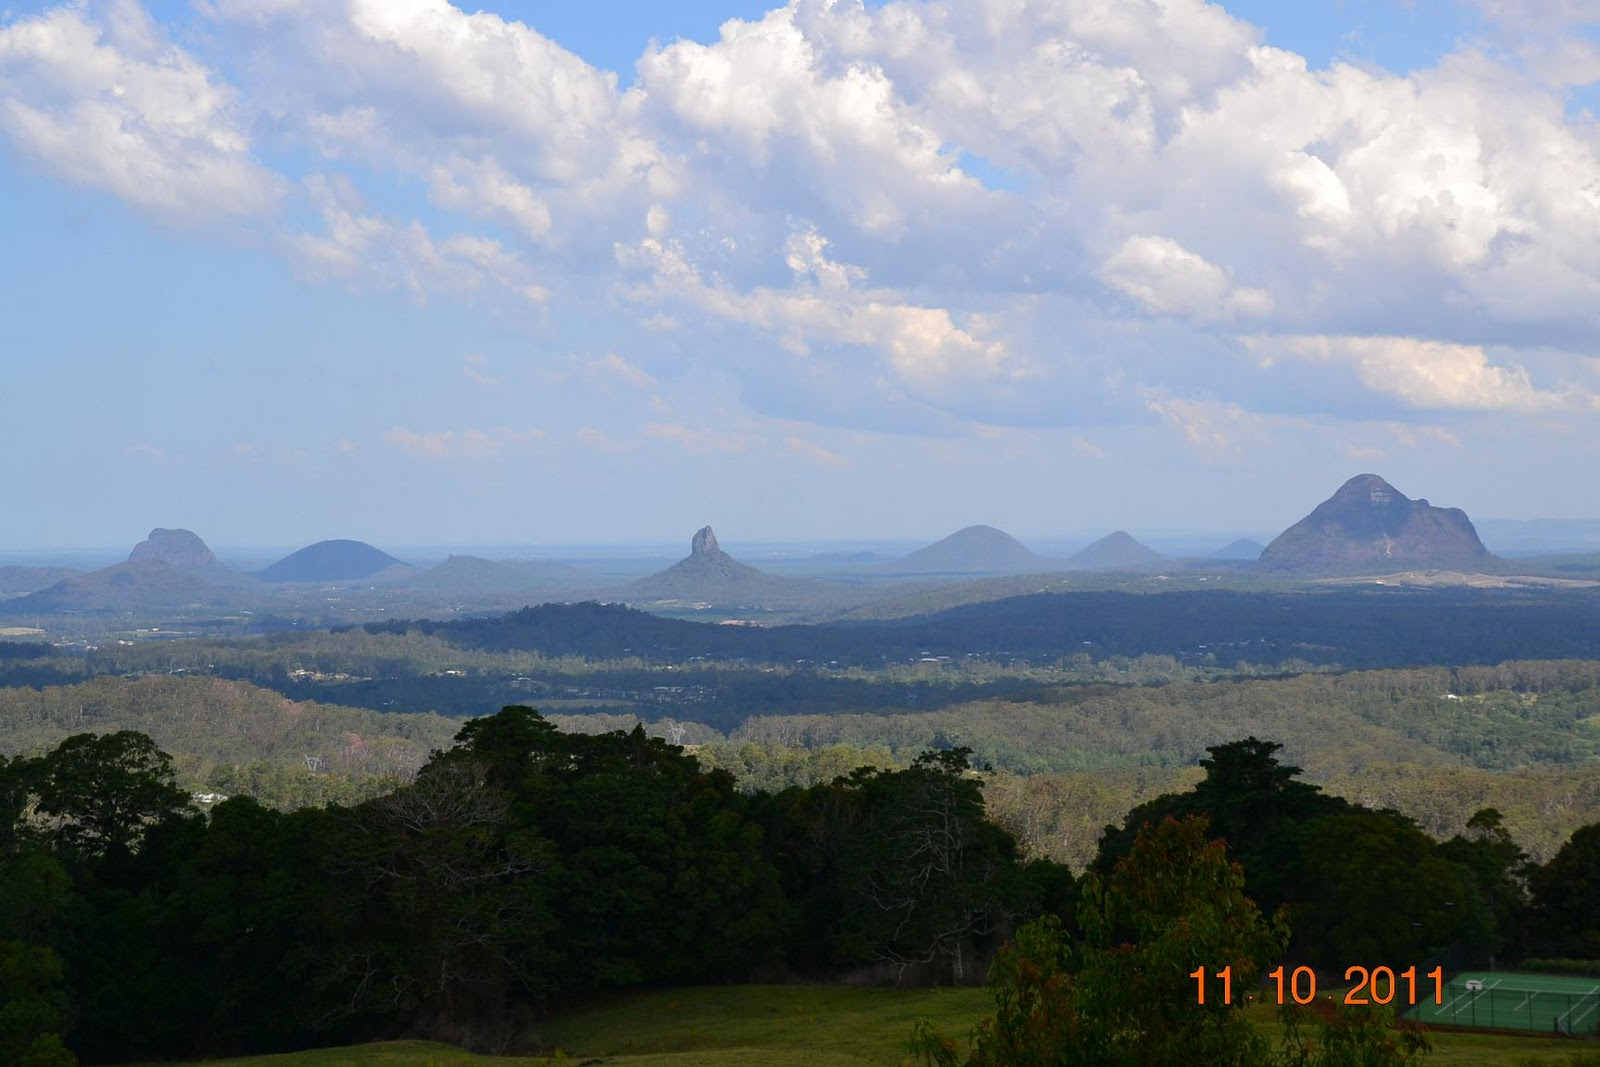 Jaded Nomad – RV ADVENTURE: Glass House Mountains